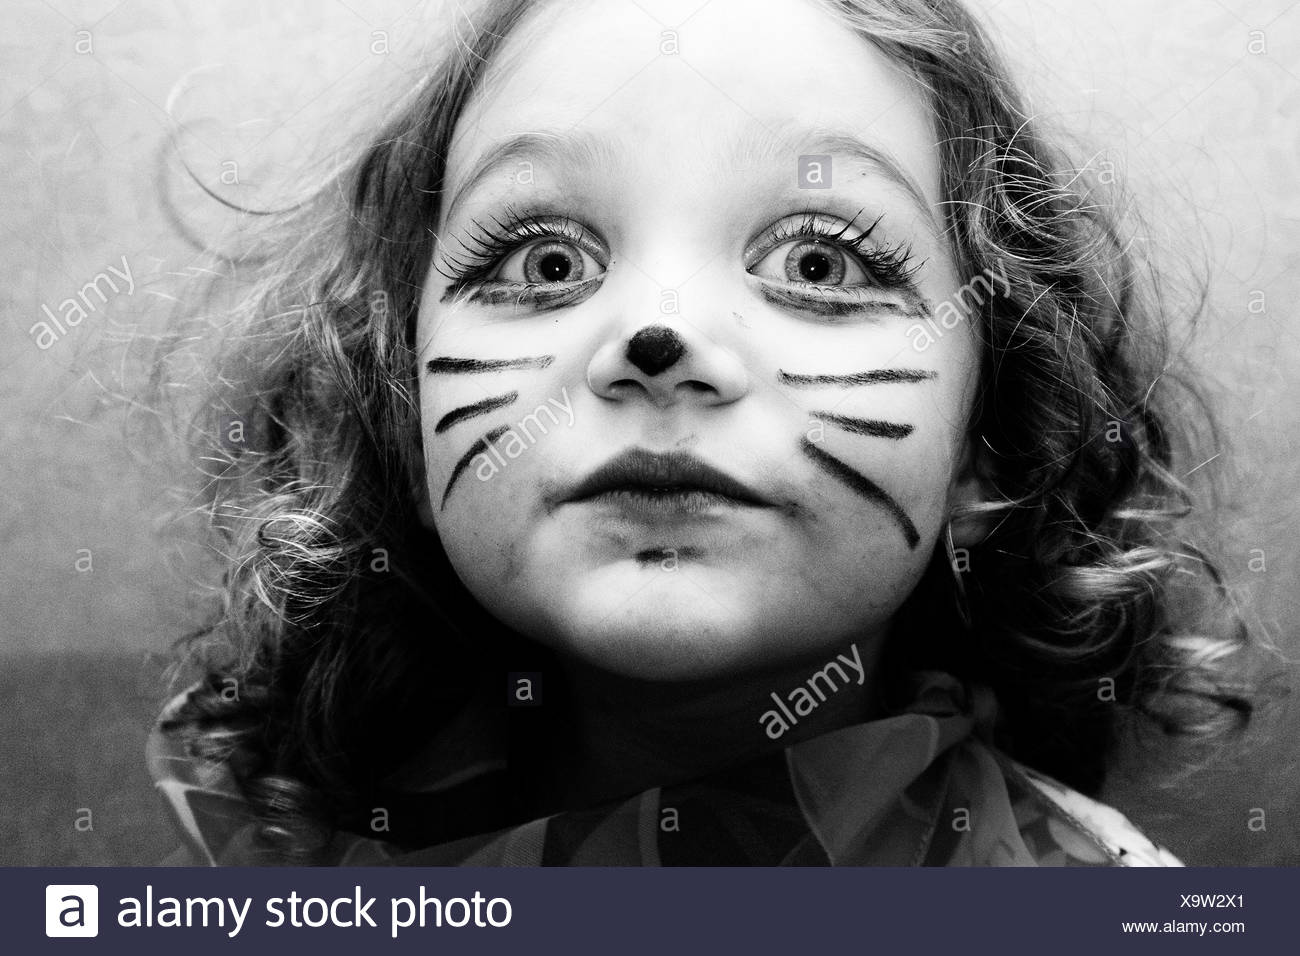 Portrait of girl (4,5) with cat face paint Stock Photo